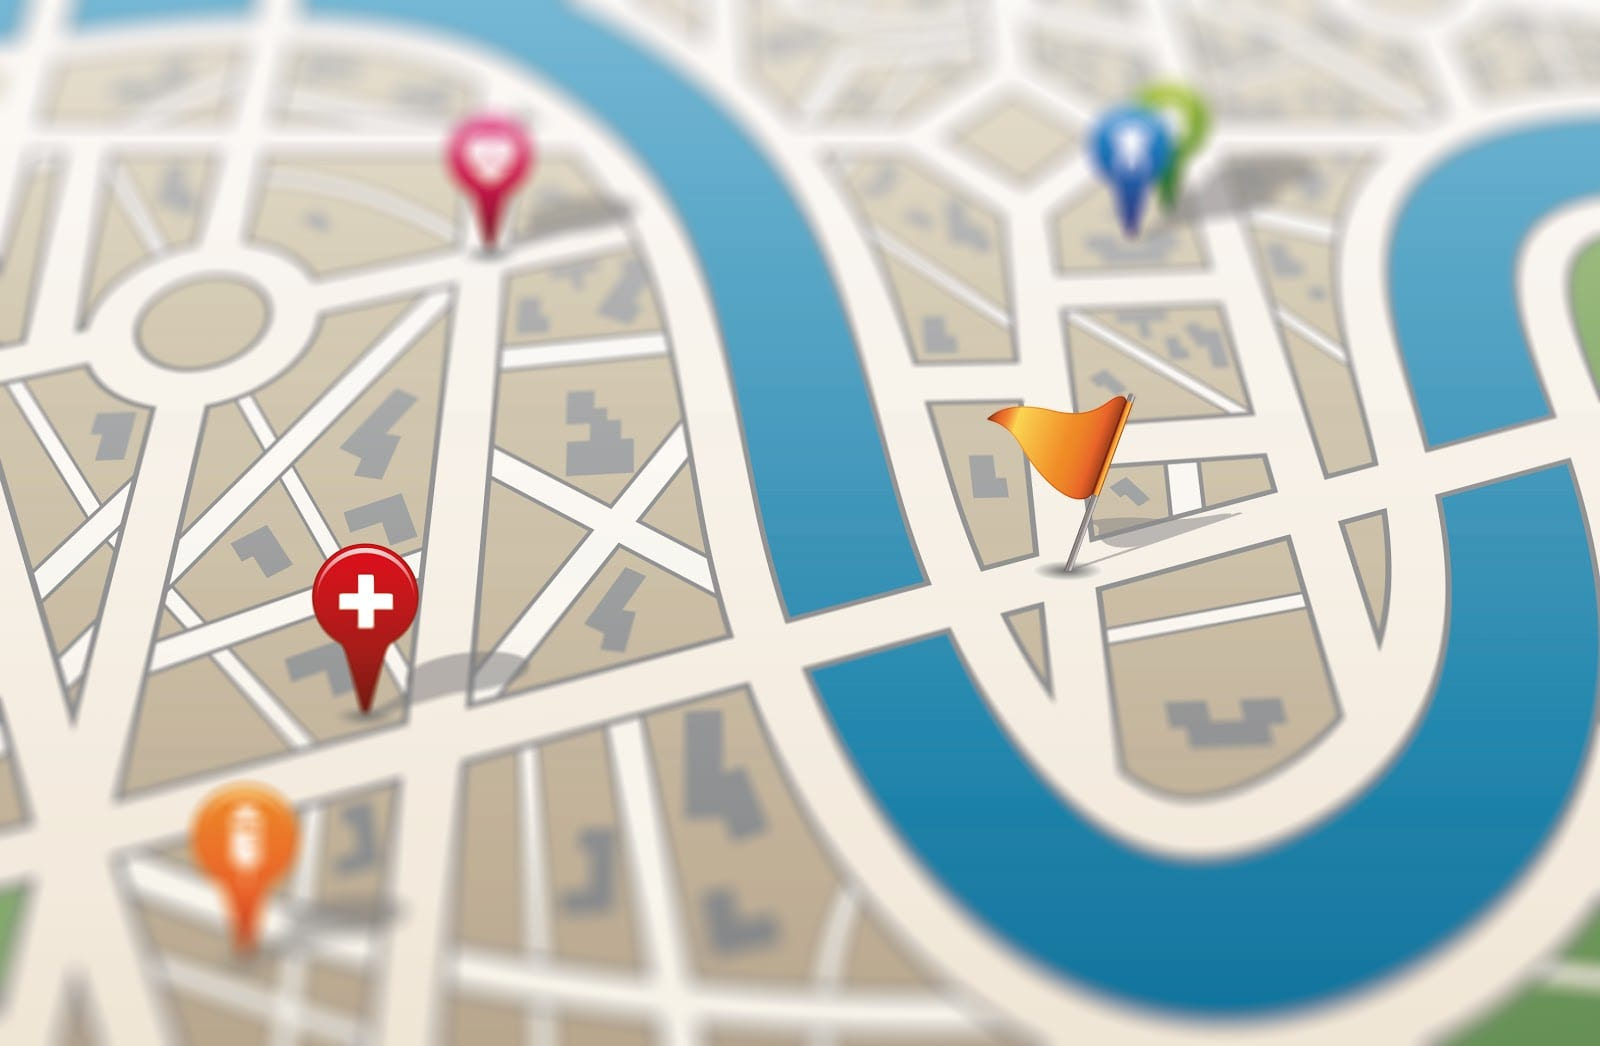 Best 10 Android Apps to Track Someone's Location